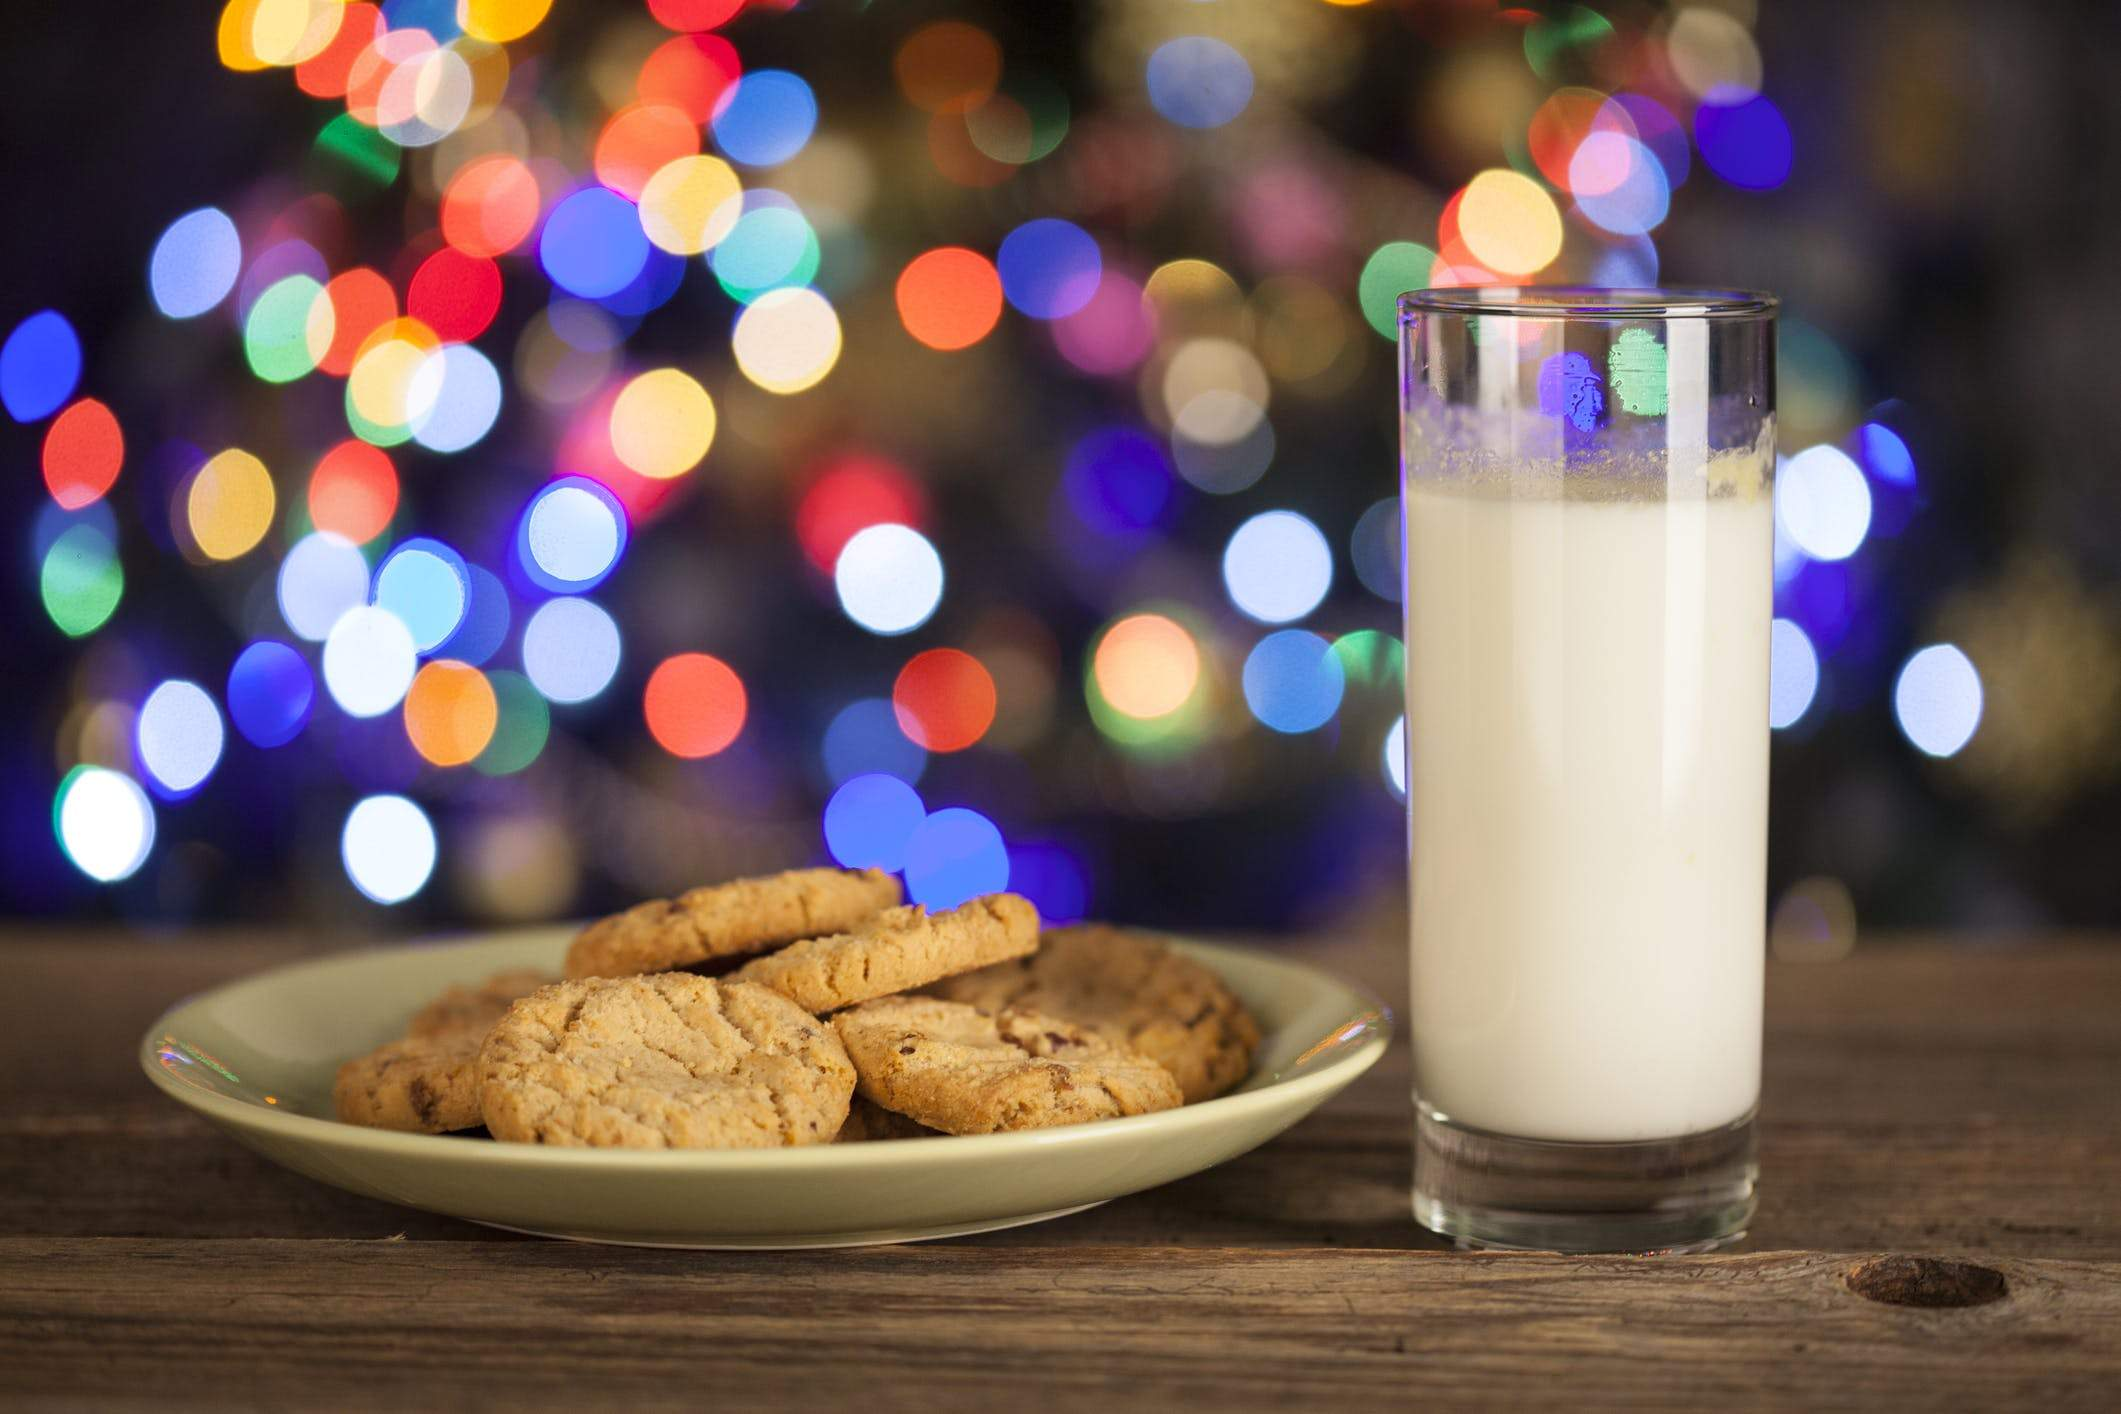 Dietitian Approved Holiday Desserts & Ingredients